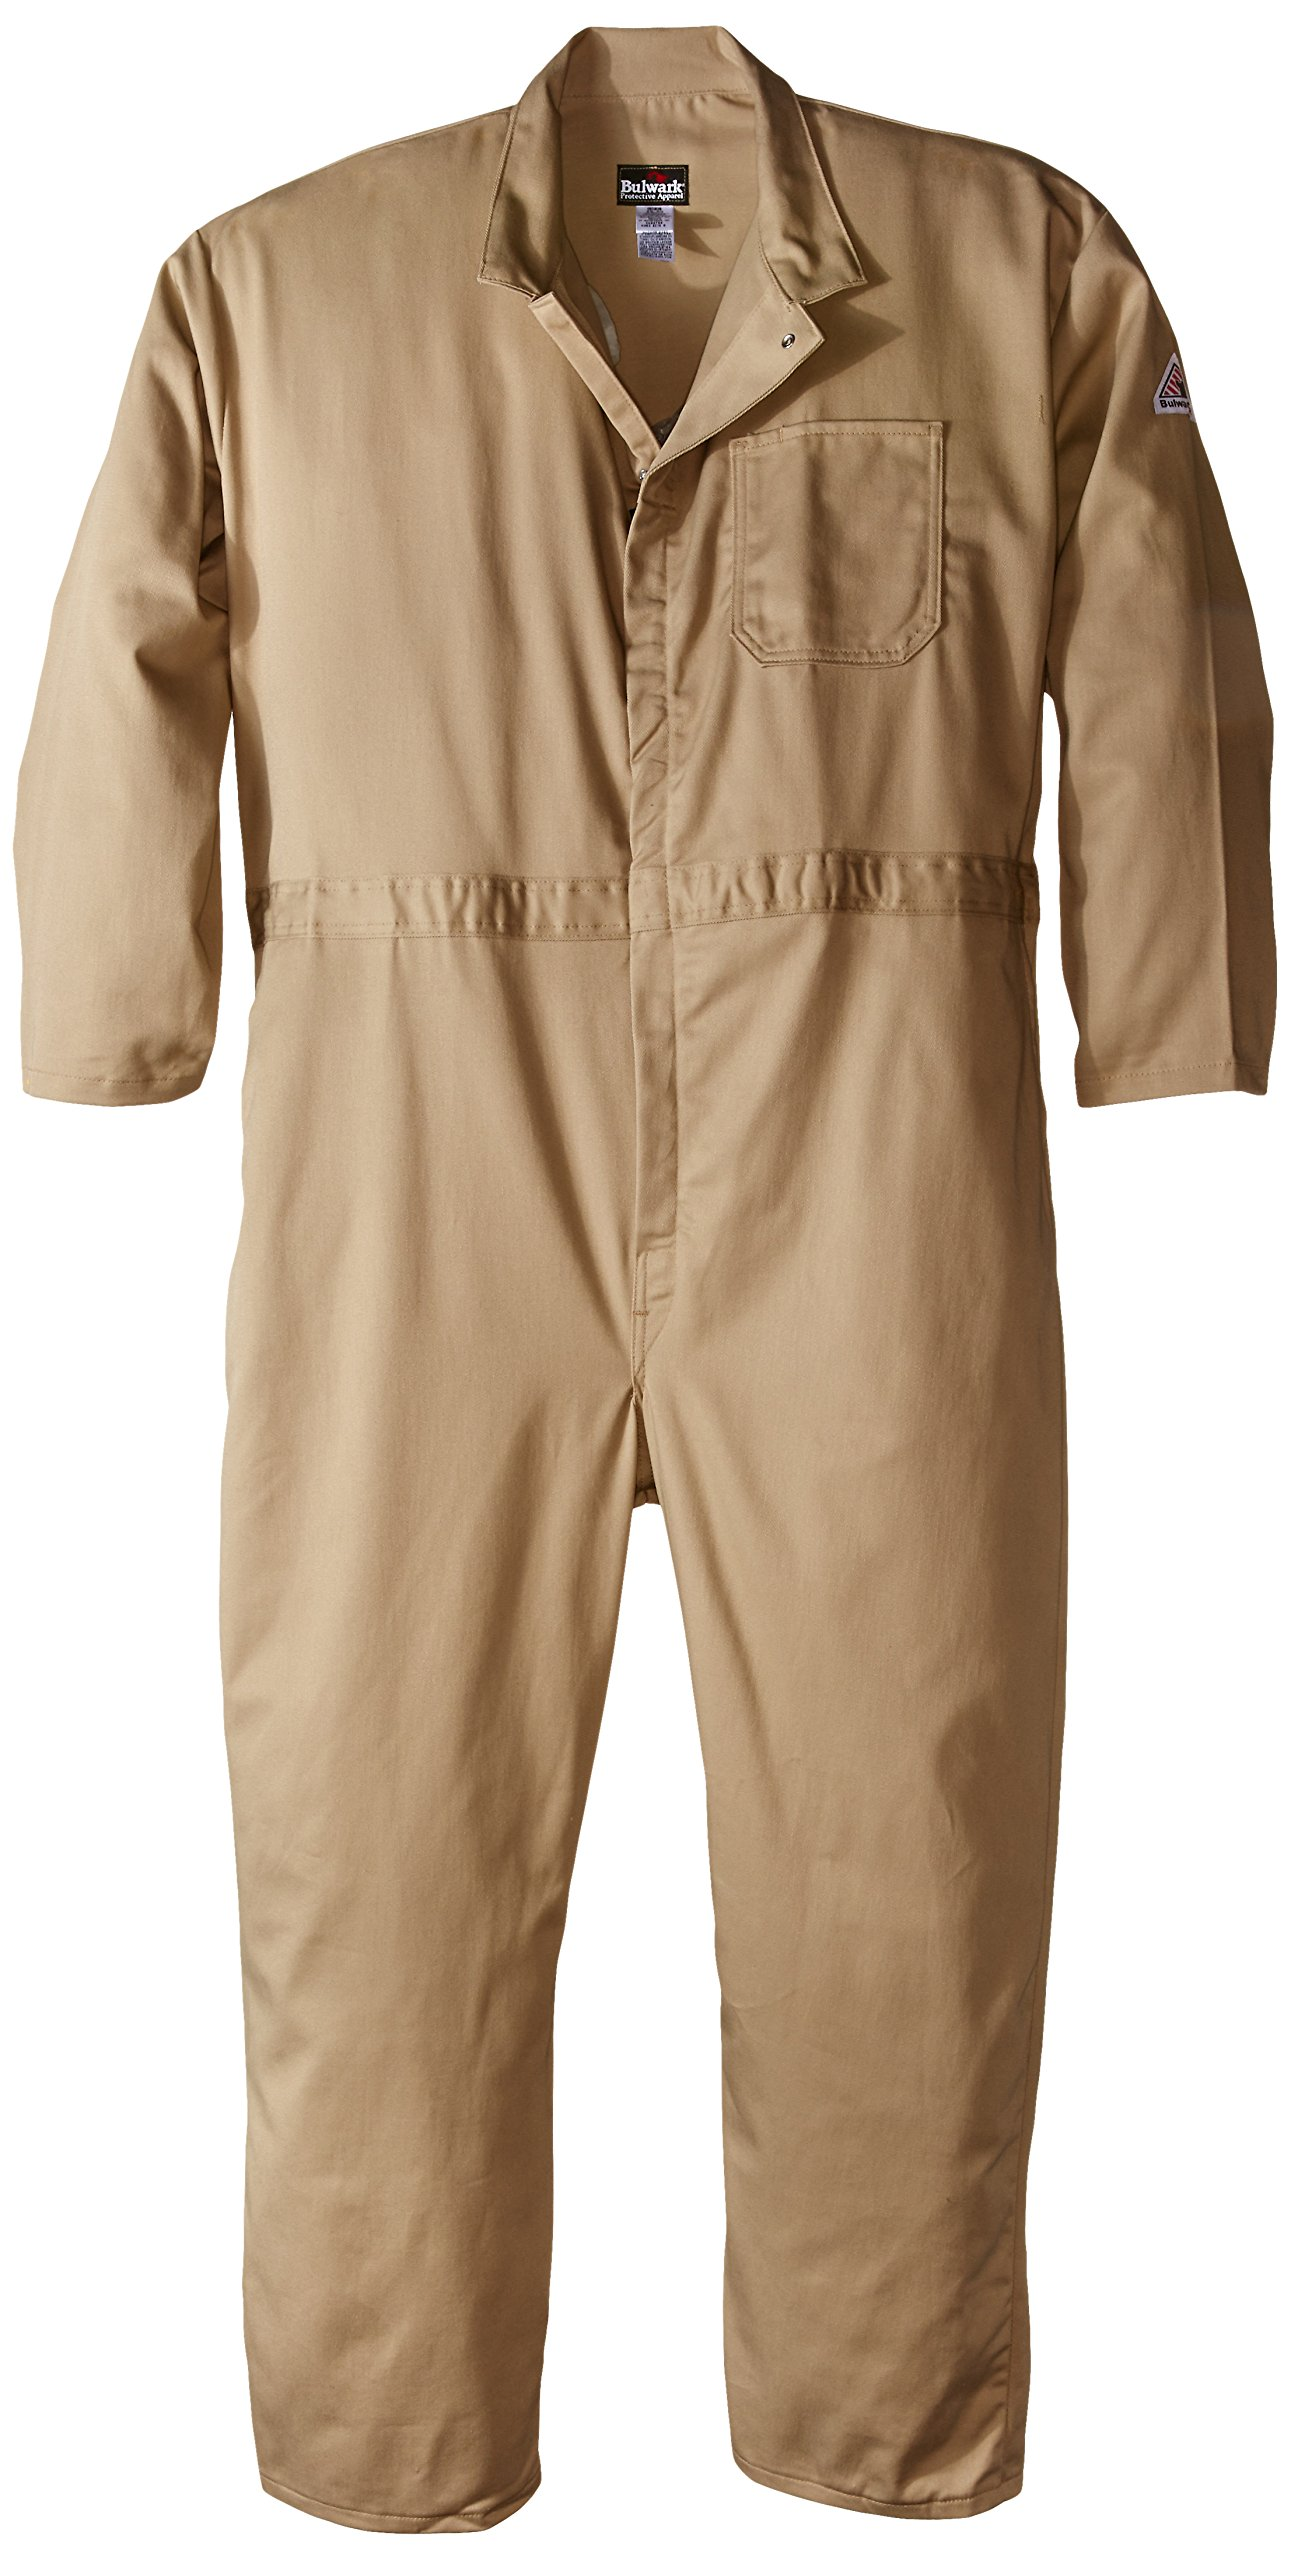 Bulwark Flame Resistant 9 oz Twill Cotton Excel FR Regular Classic Coverall with Hemmed Sleeves, Khaki, Size 42